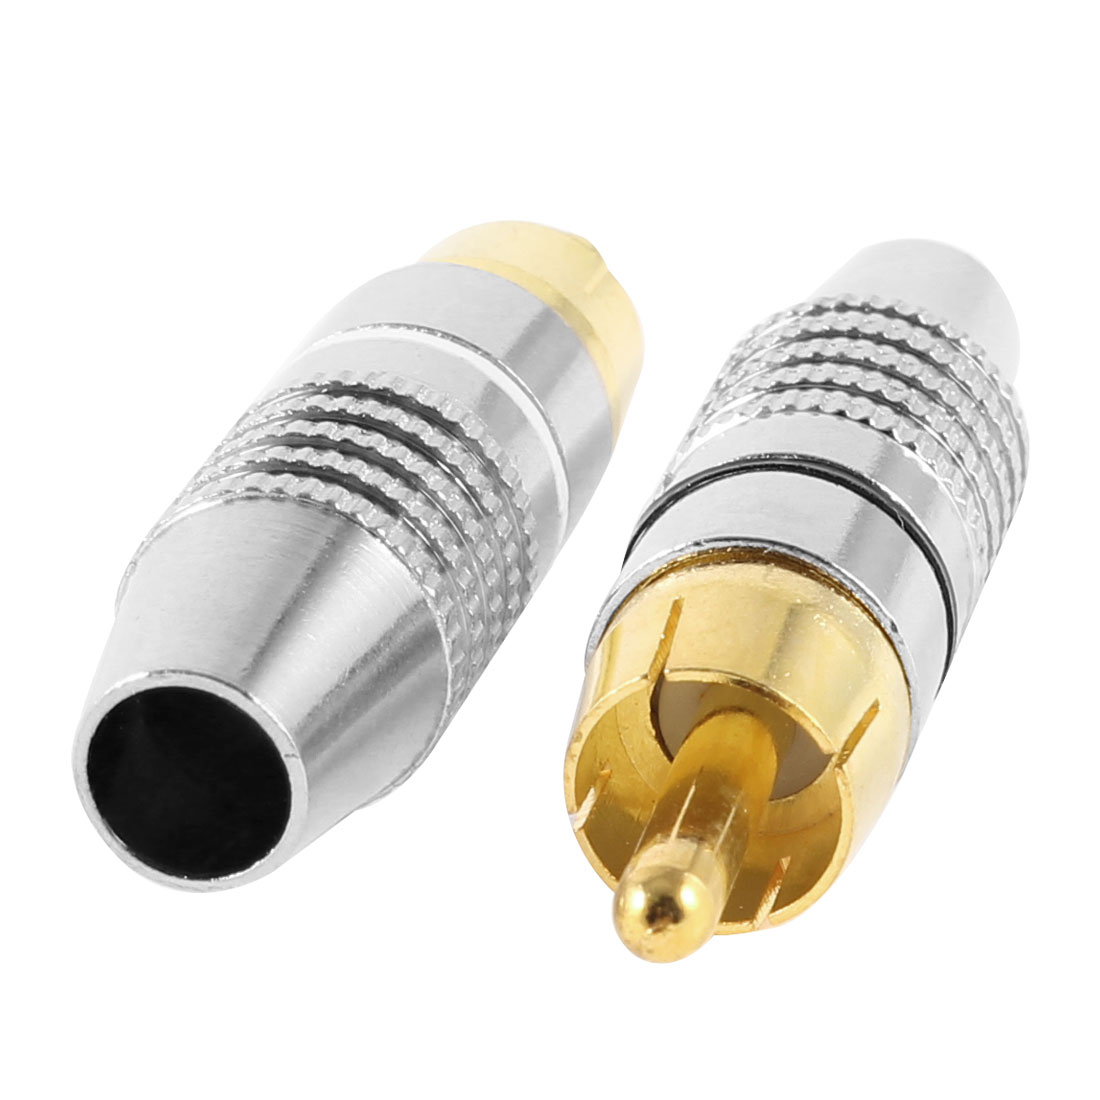 2 Pcs 45mm x 12mm Male RCA Jack Audio Video AV Connectors Adapters